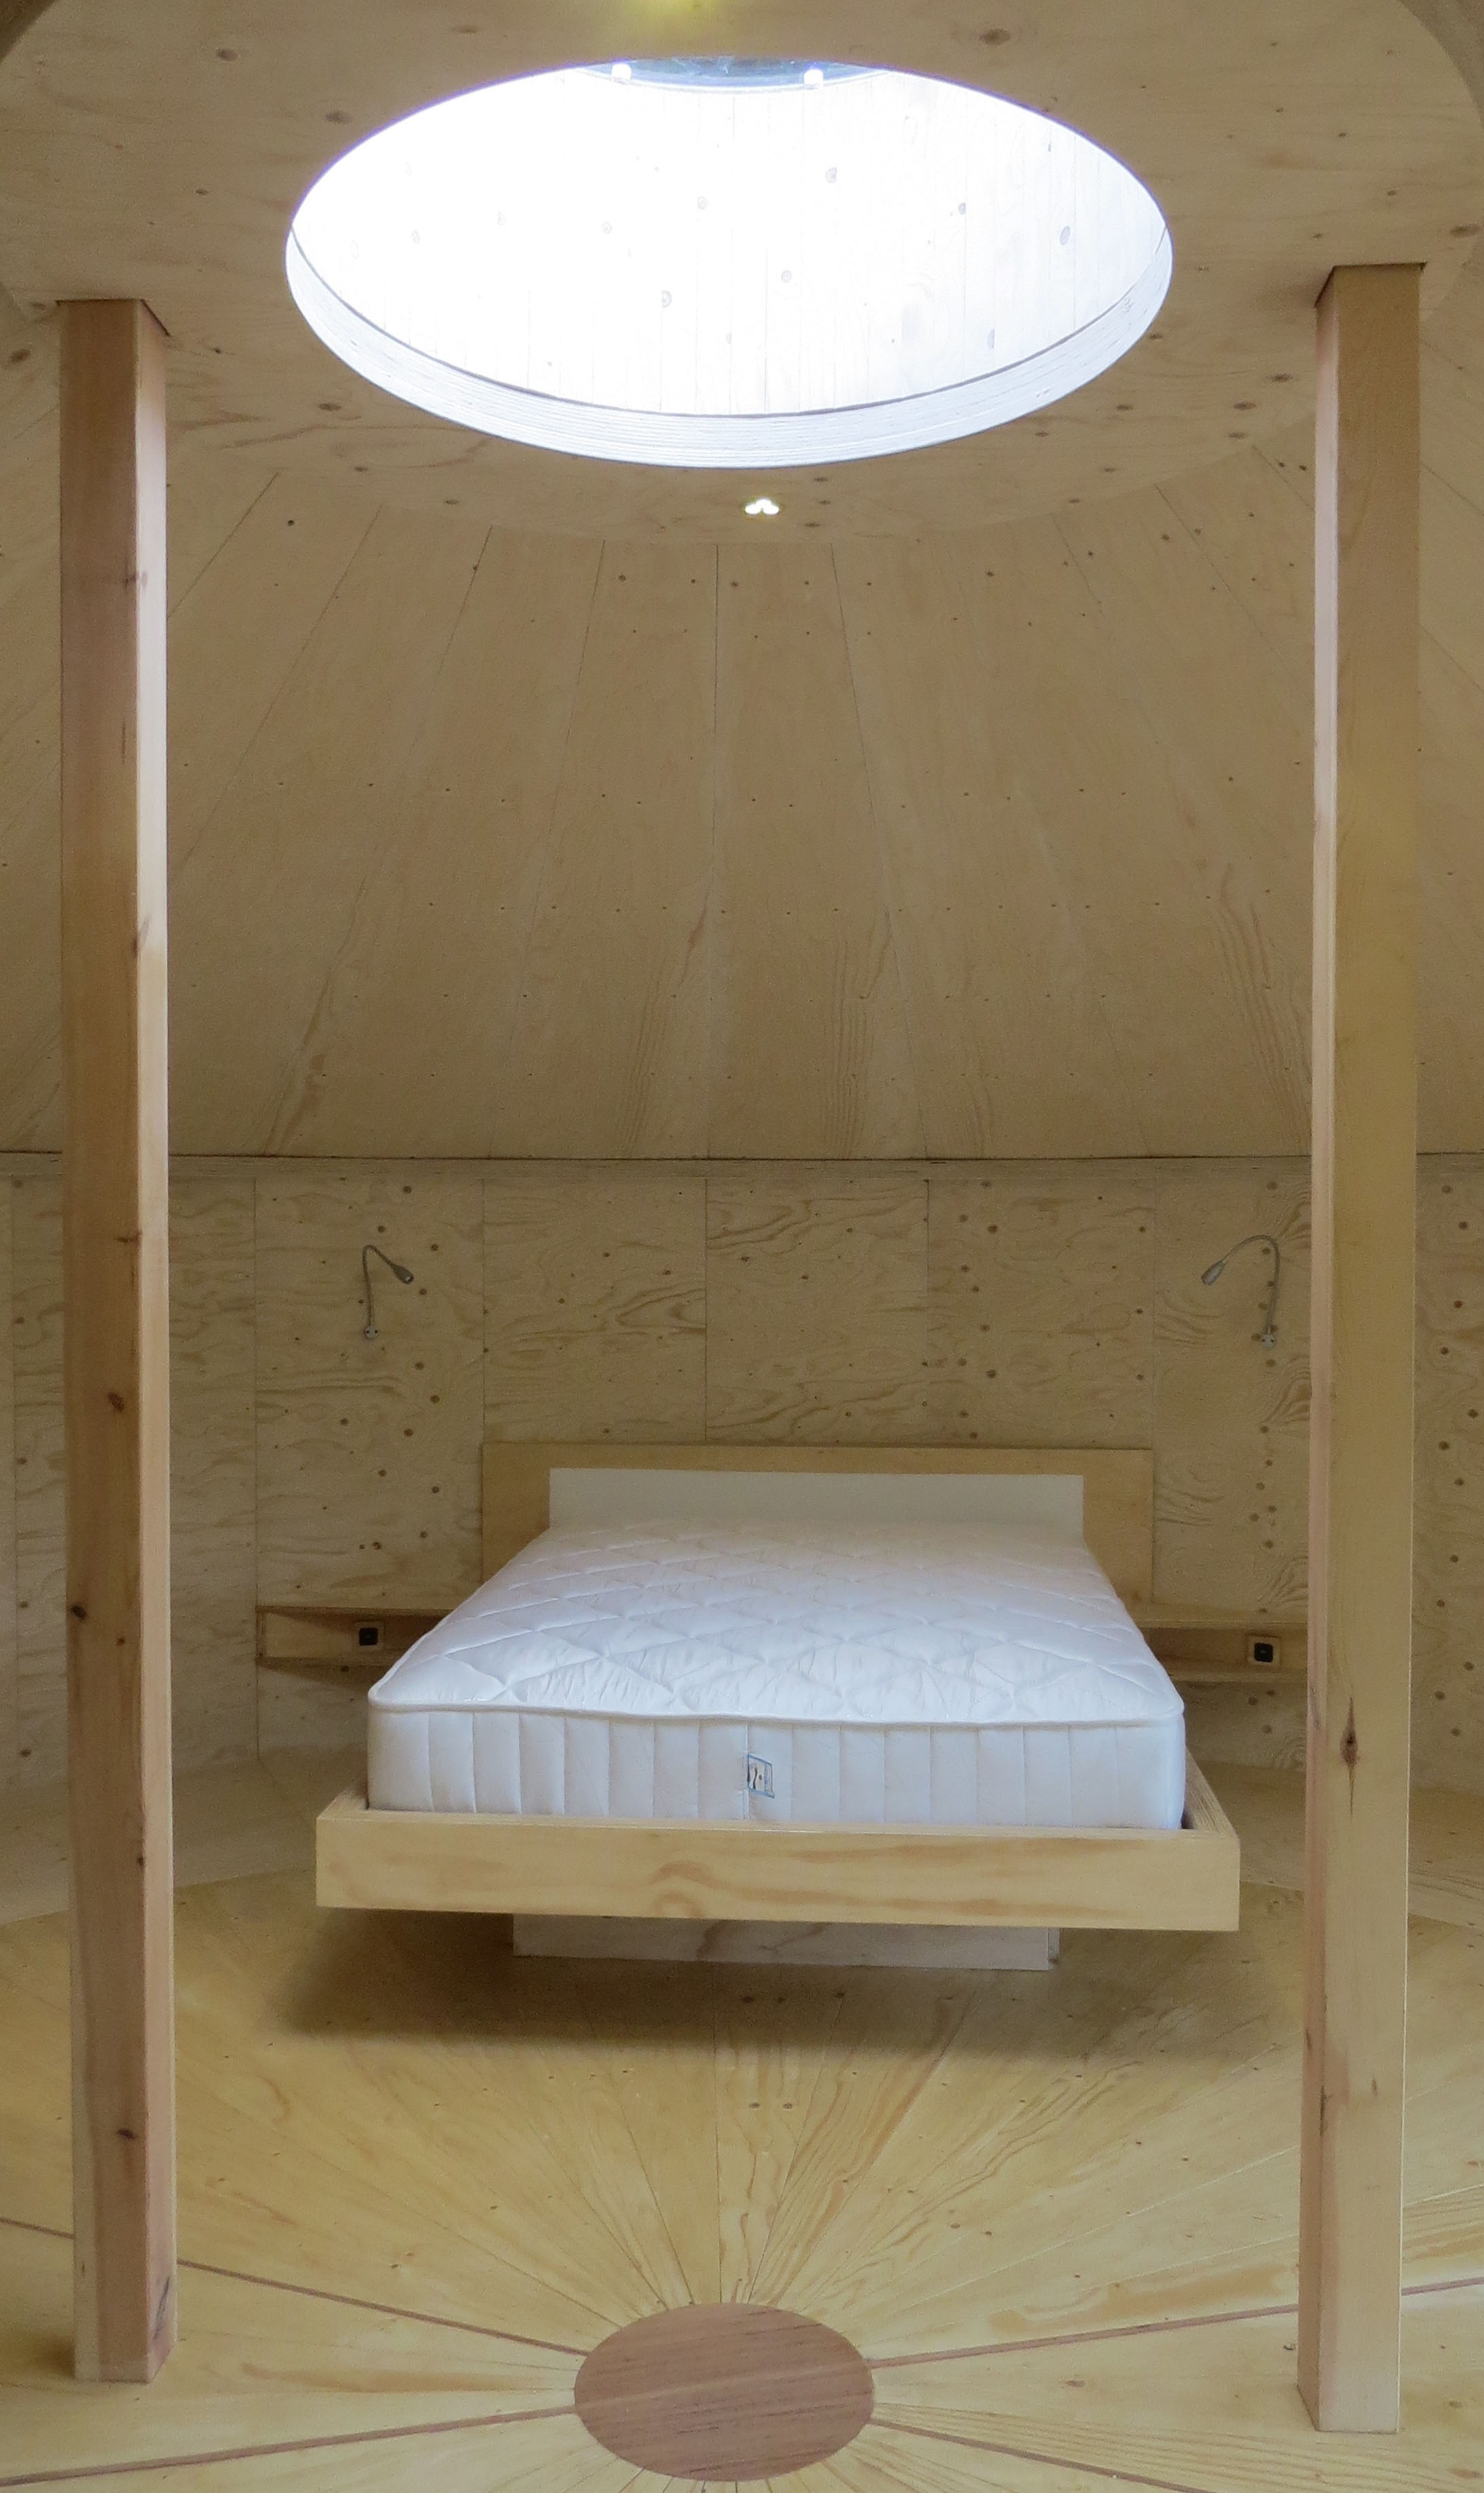 Echo Yurt Bed and roof light